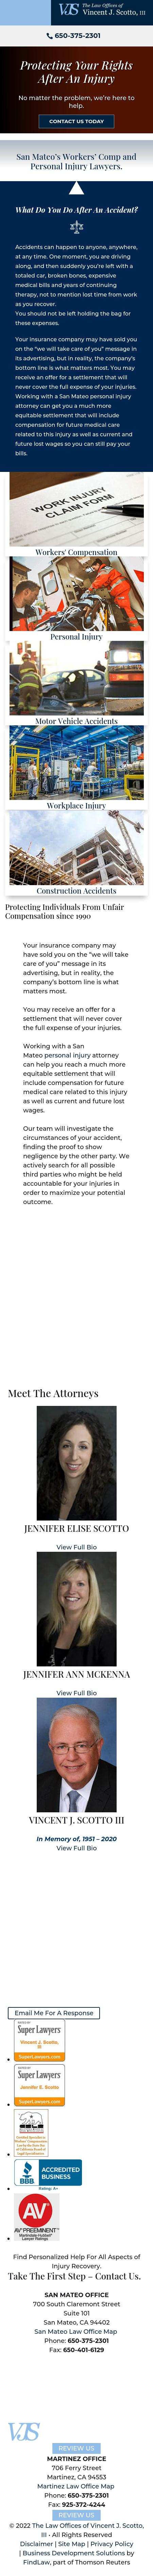 The Law Offices of Vincent J. Scotto, III - San Mateo CA Lawyers